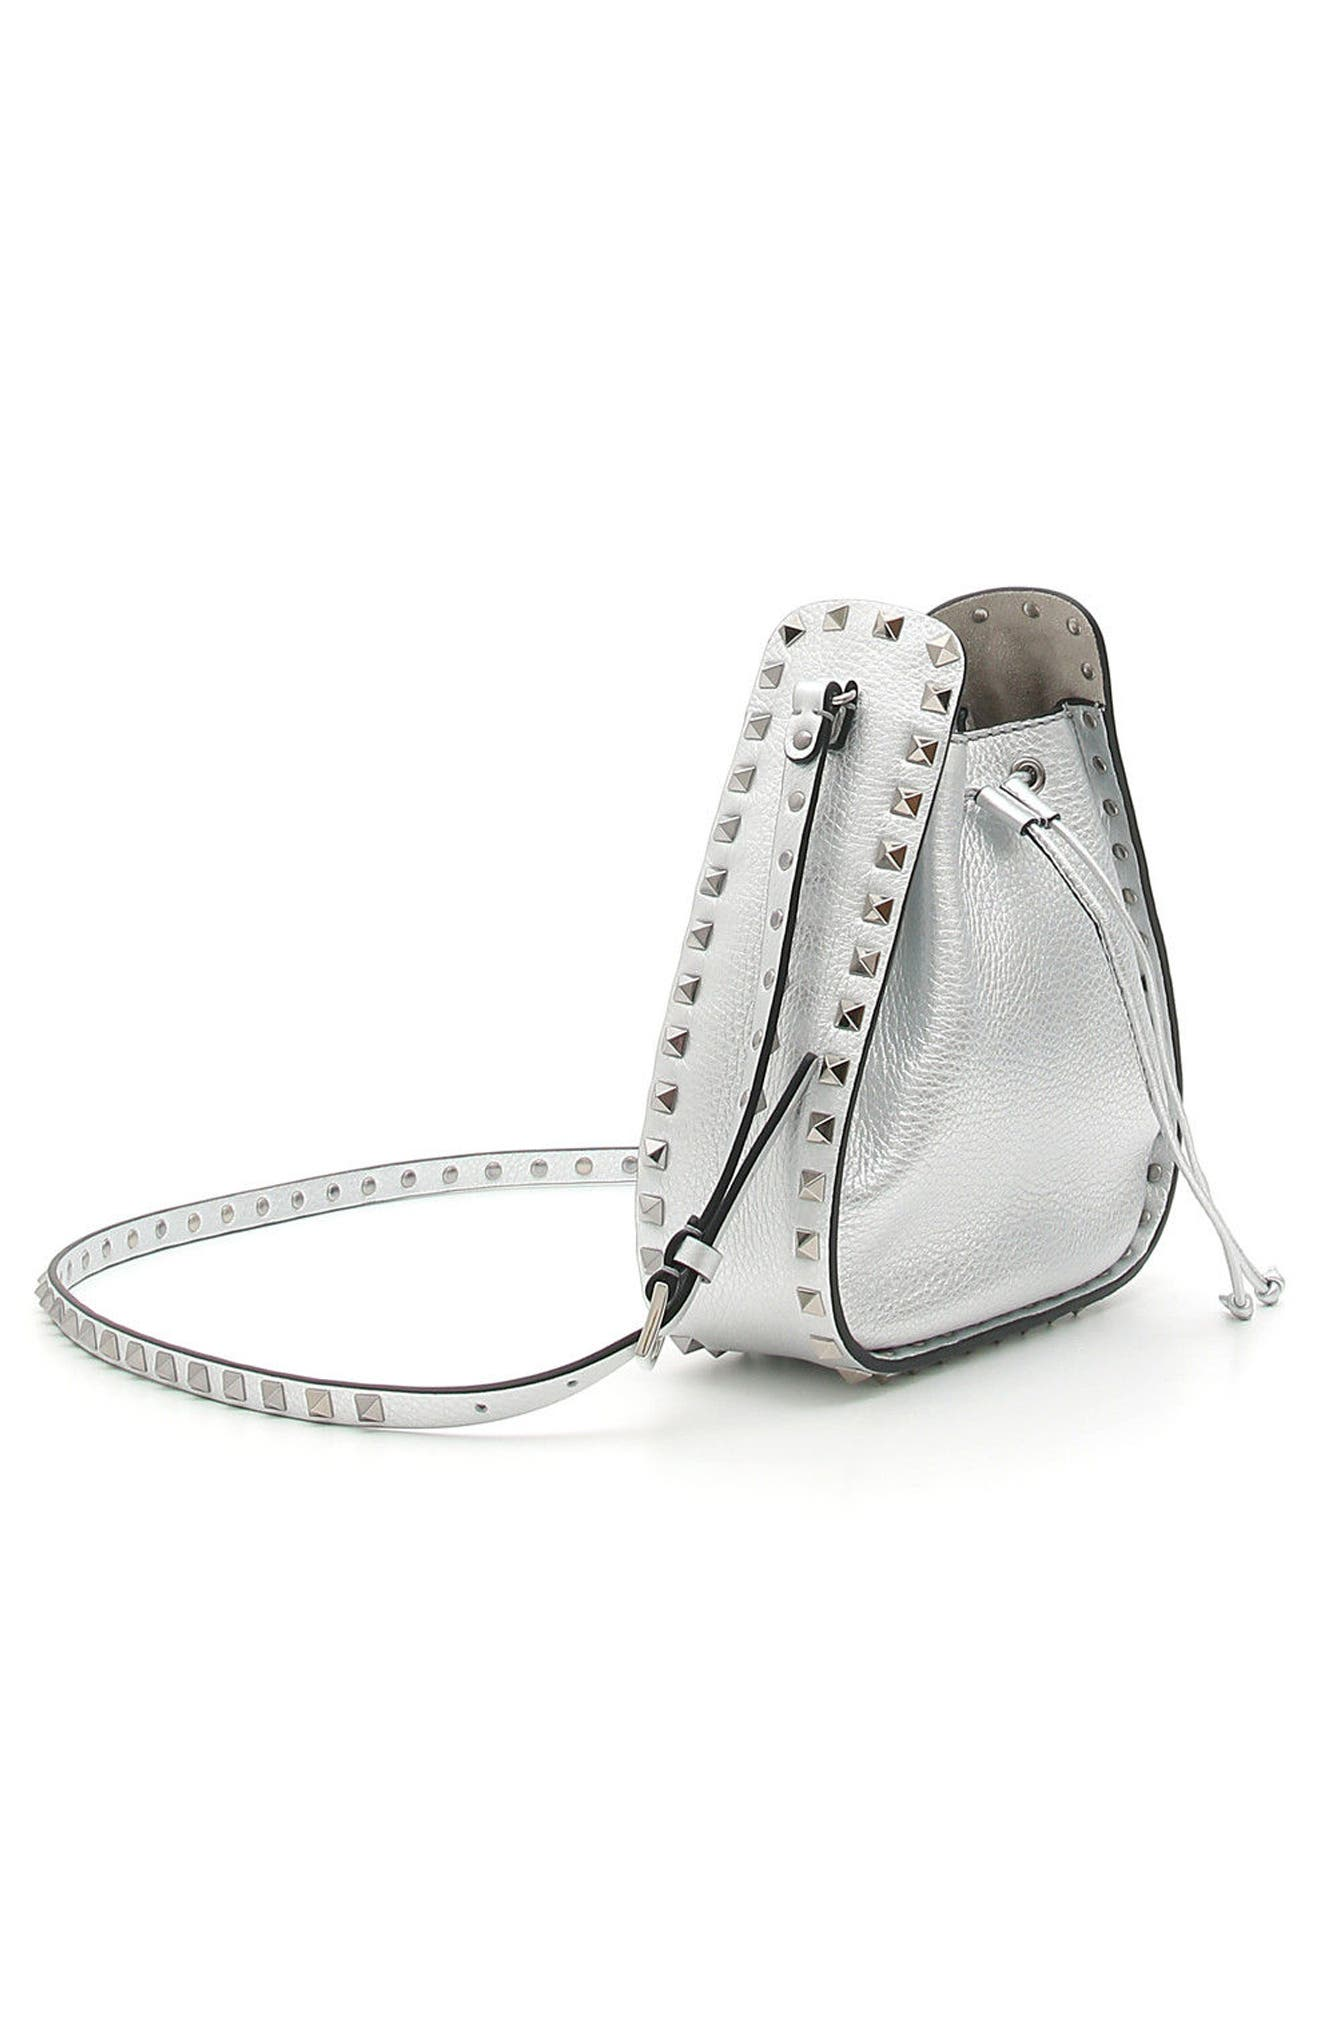 Rockstud Metallic Leather Bucket Bag,                             Alternate thumbnail 3, color,                             Silver